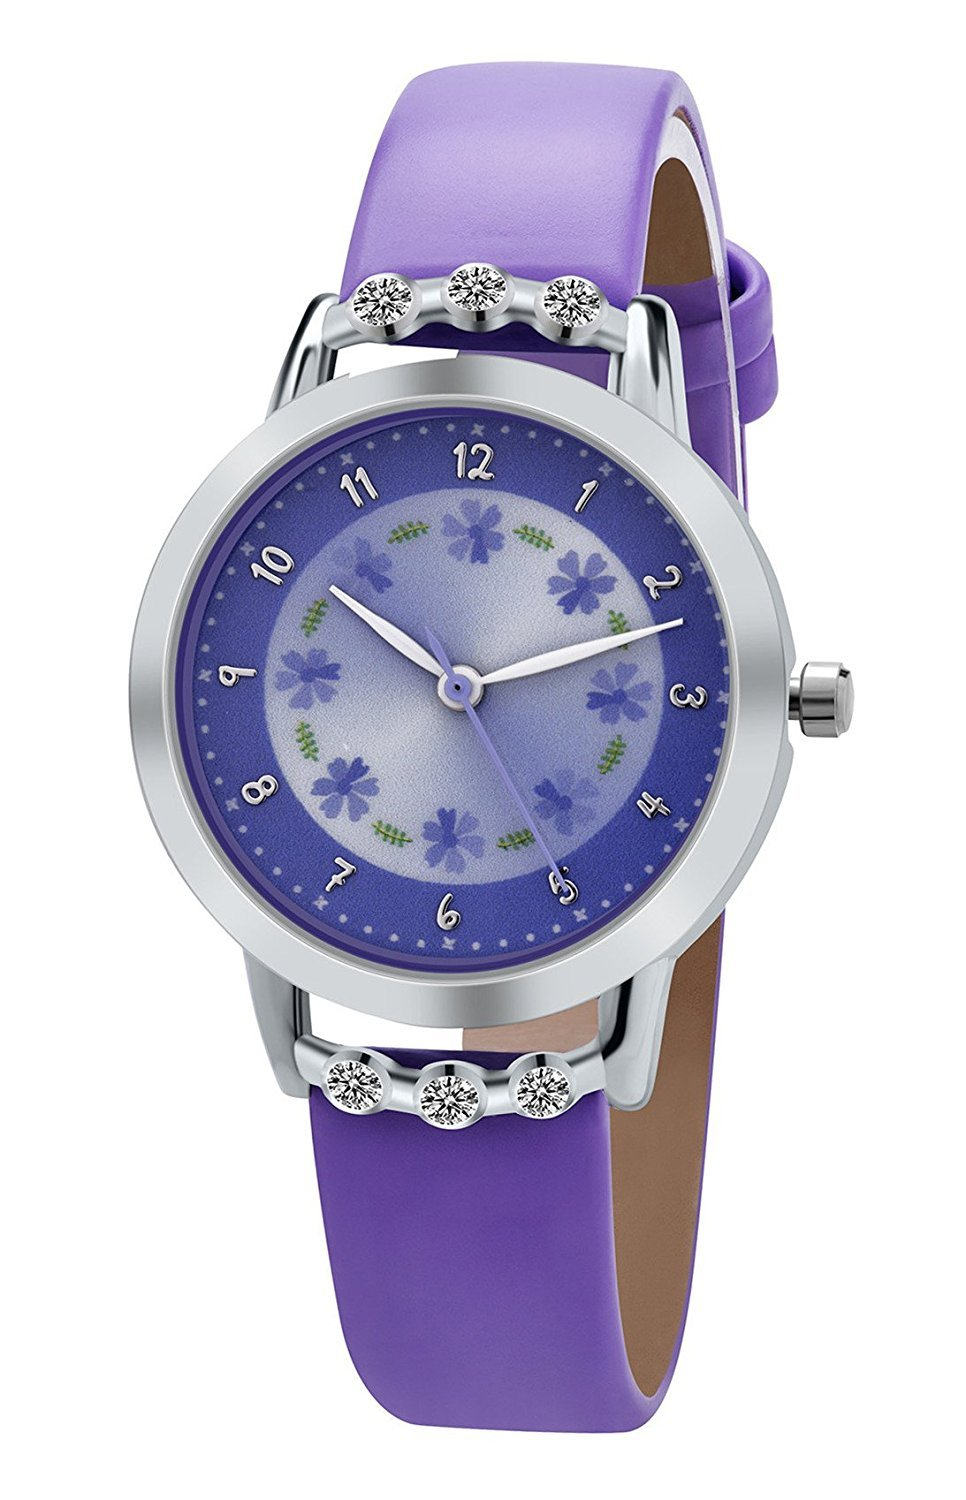 Girl Watches PASNEW Easy Use and Easy Reader Time Leather Band Watch for Kids Purple by PASNEW